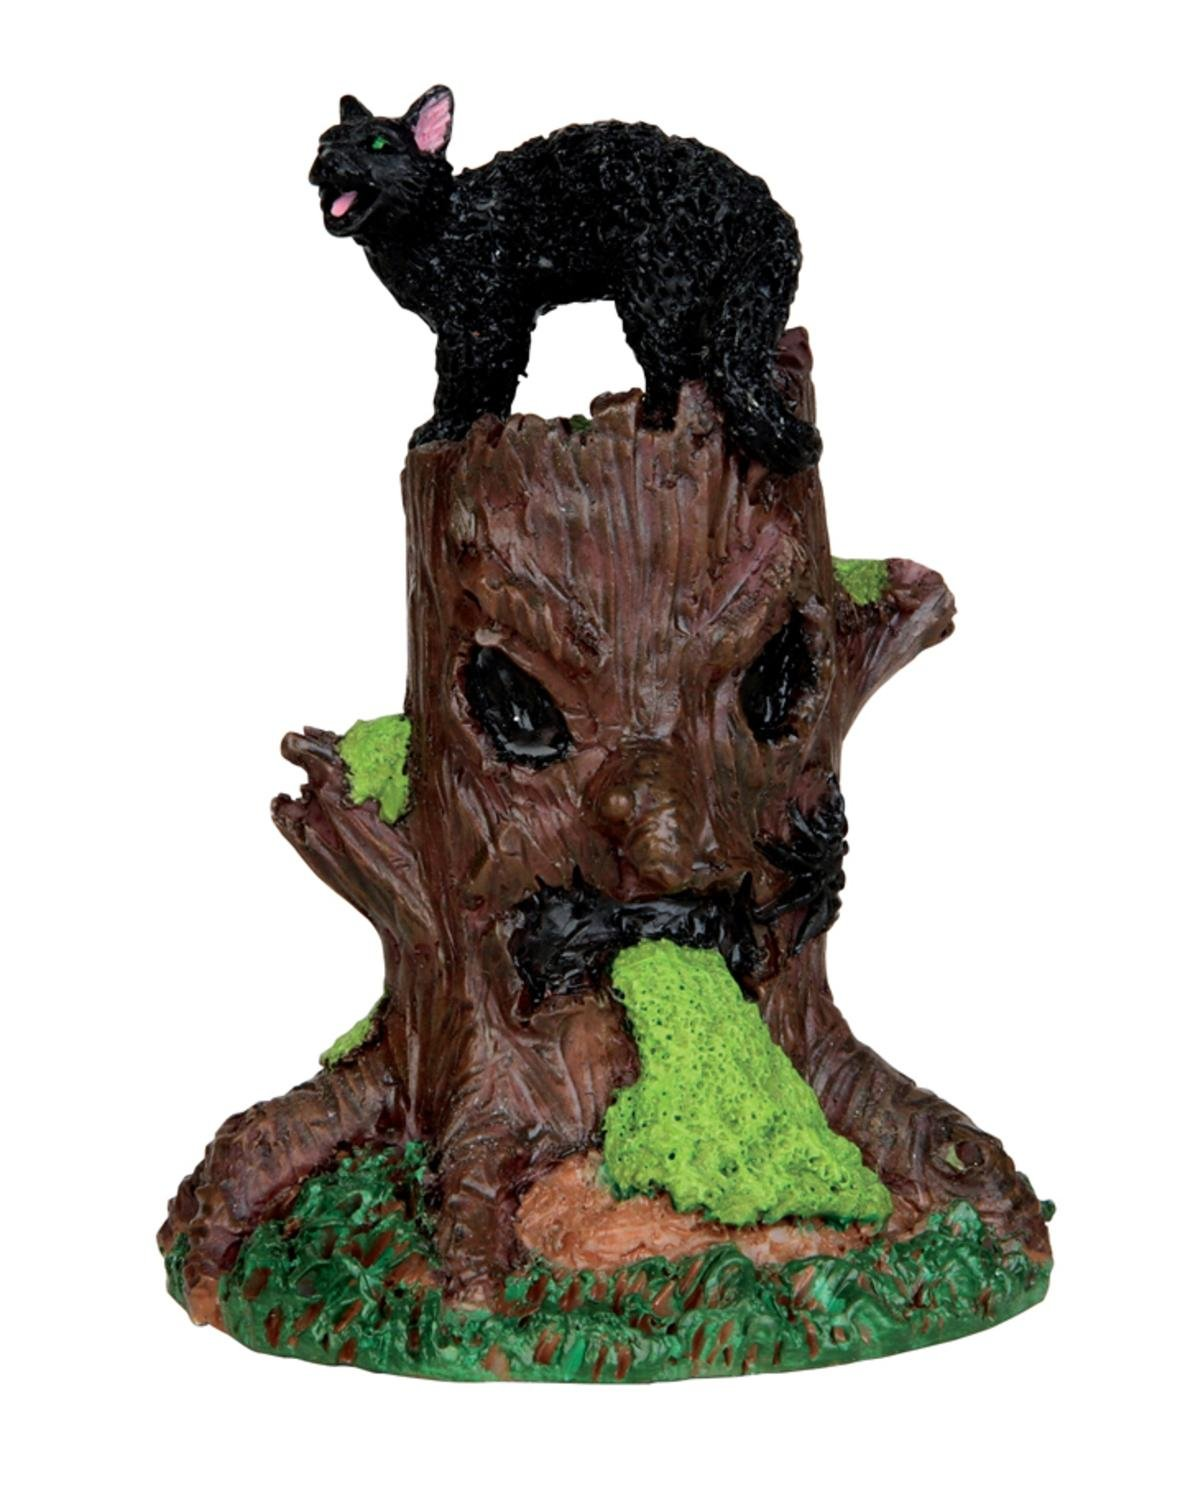 Lemax Spooky Town Village Spooky Woods Tree Stump Halloween Accessory #54915